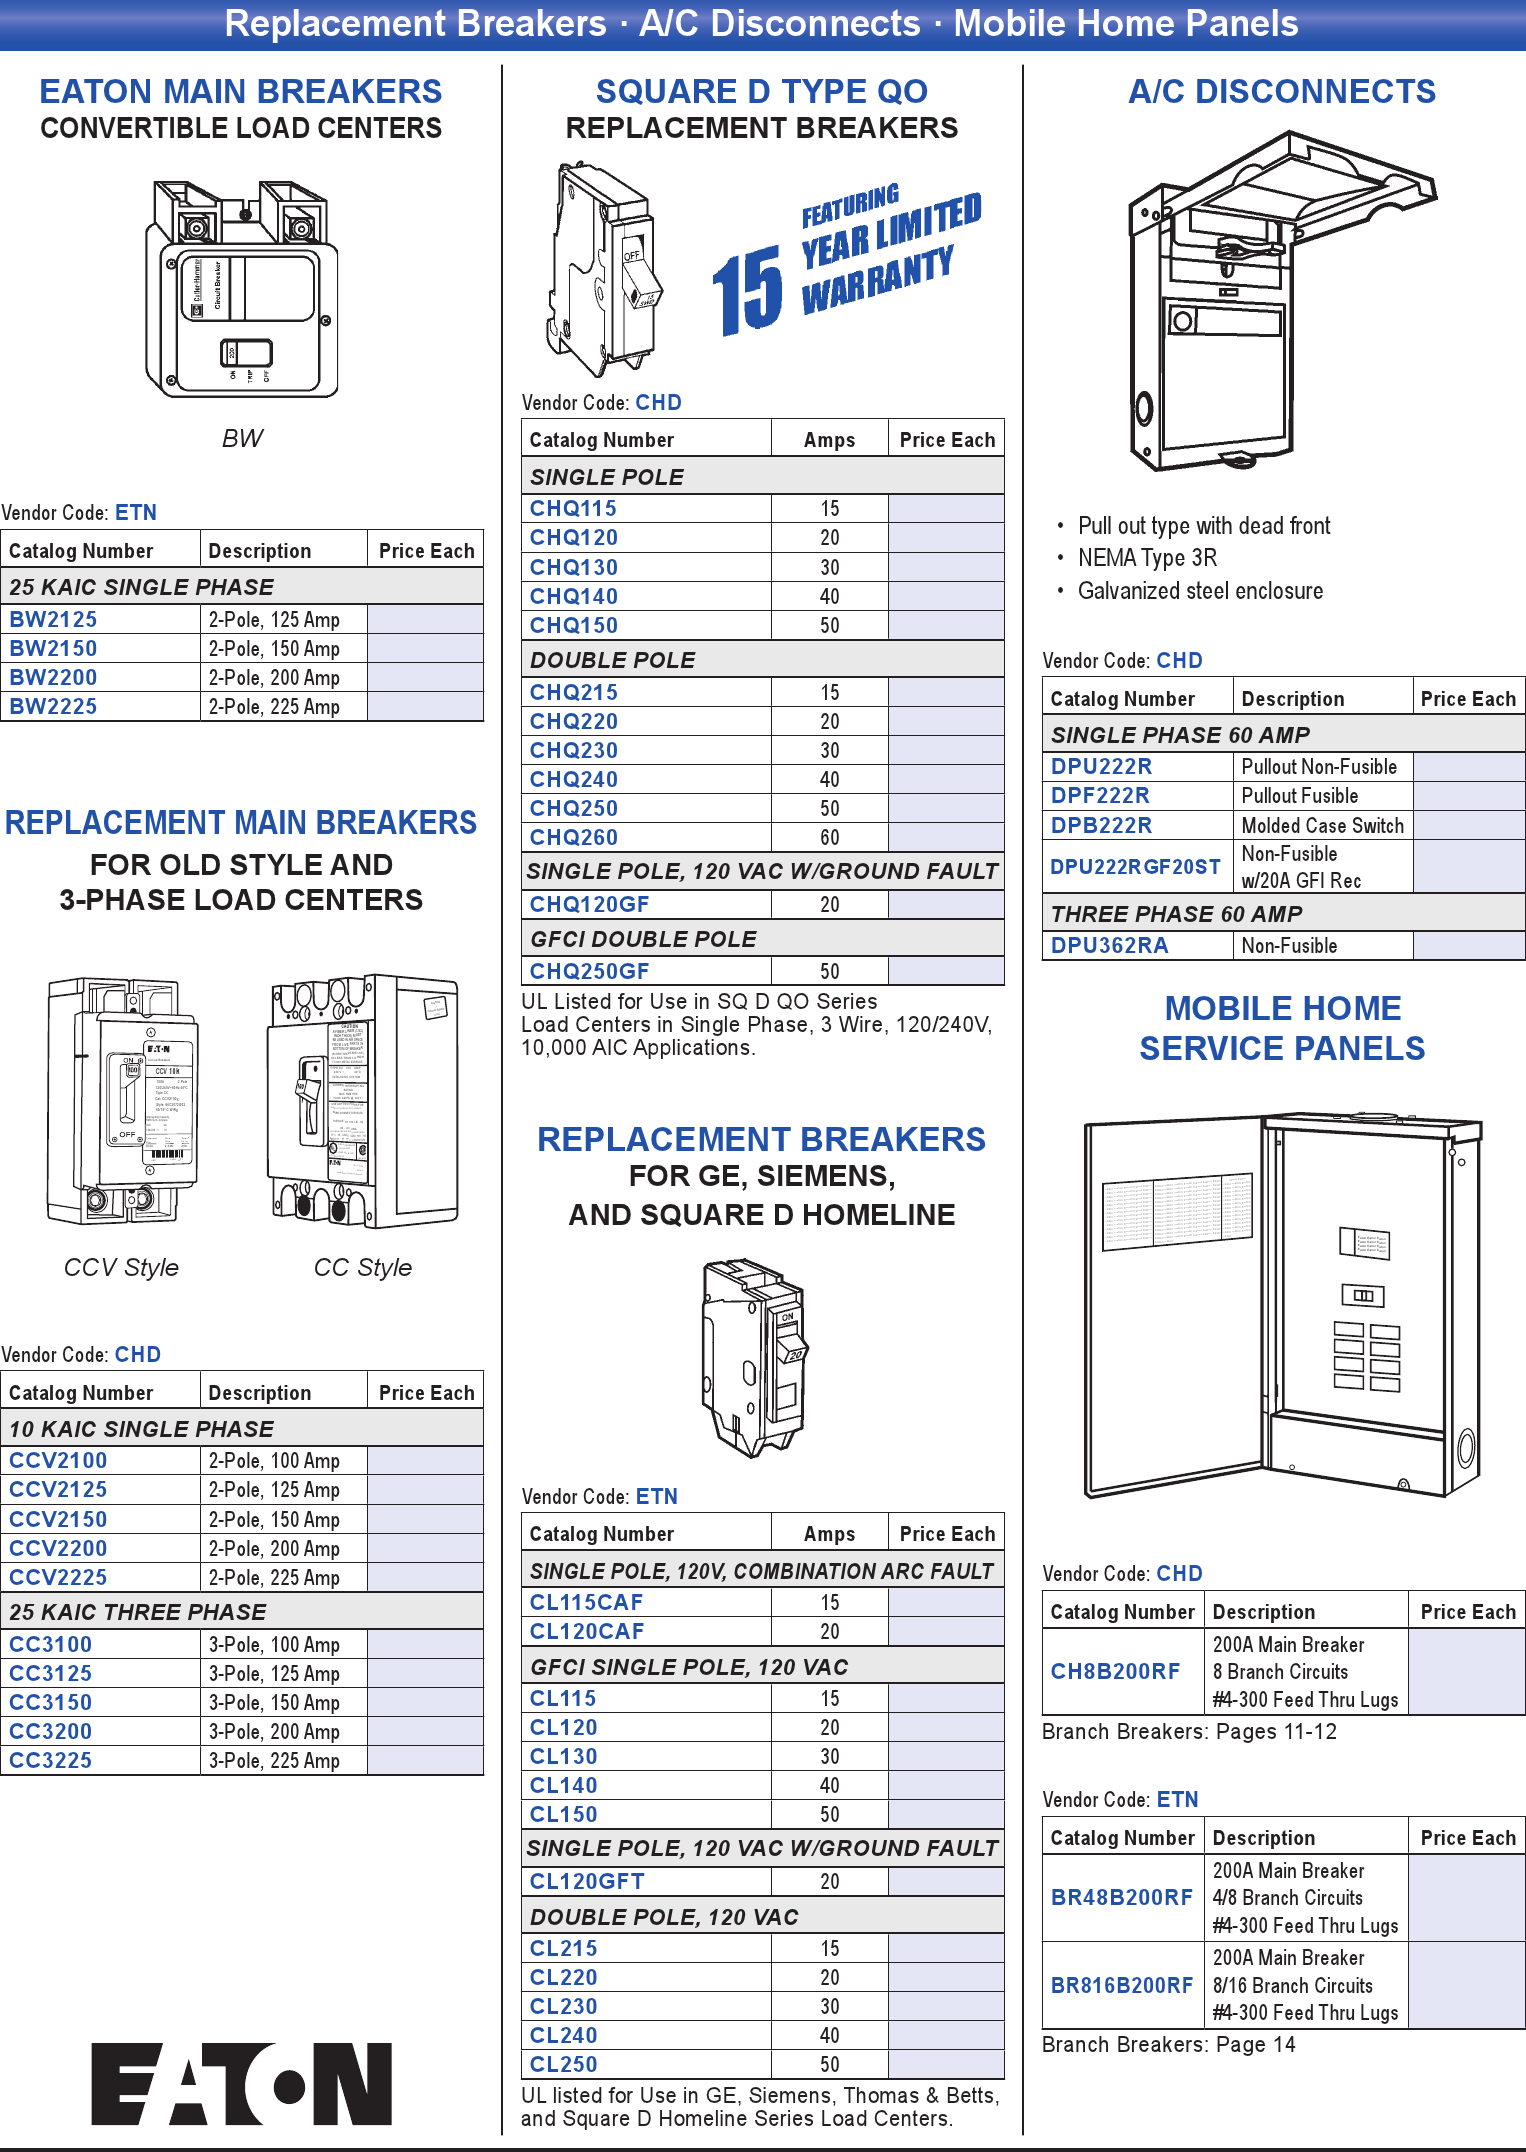 Replacement Breakers · A/C Disconnects · Mobile Home Panels - Print on air mobile, ceramic mobile, water mobile, ice mobile, element mobile,